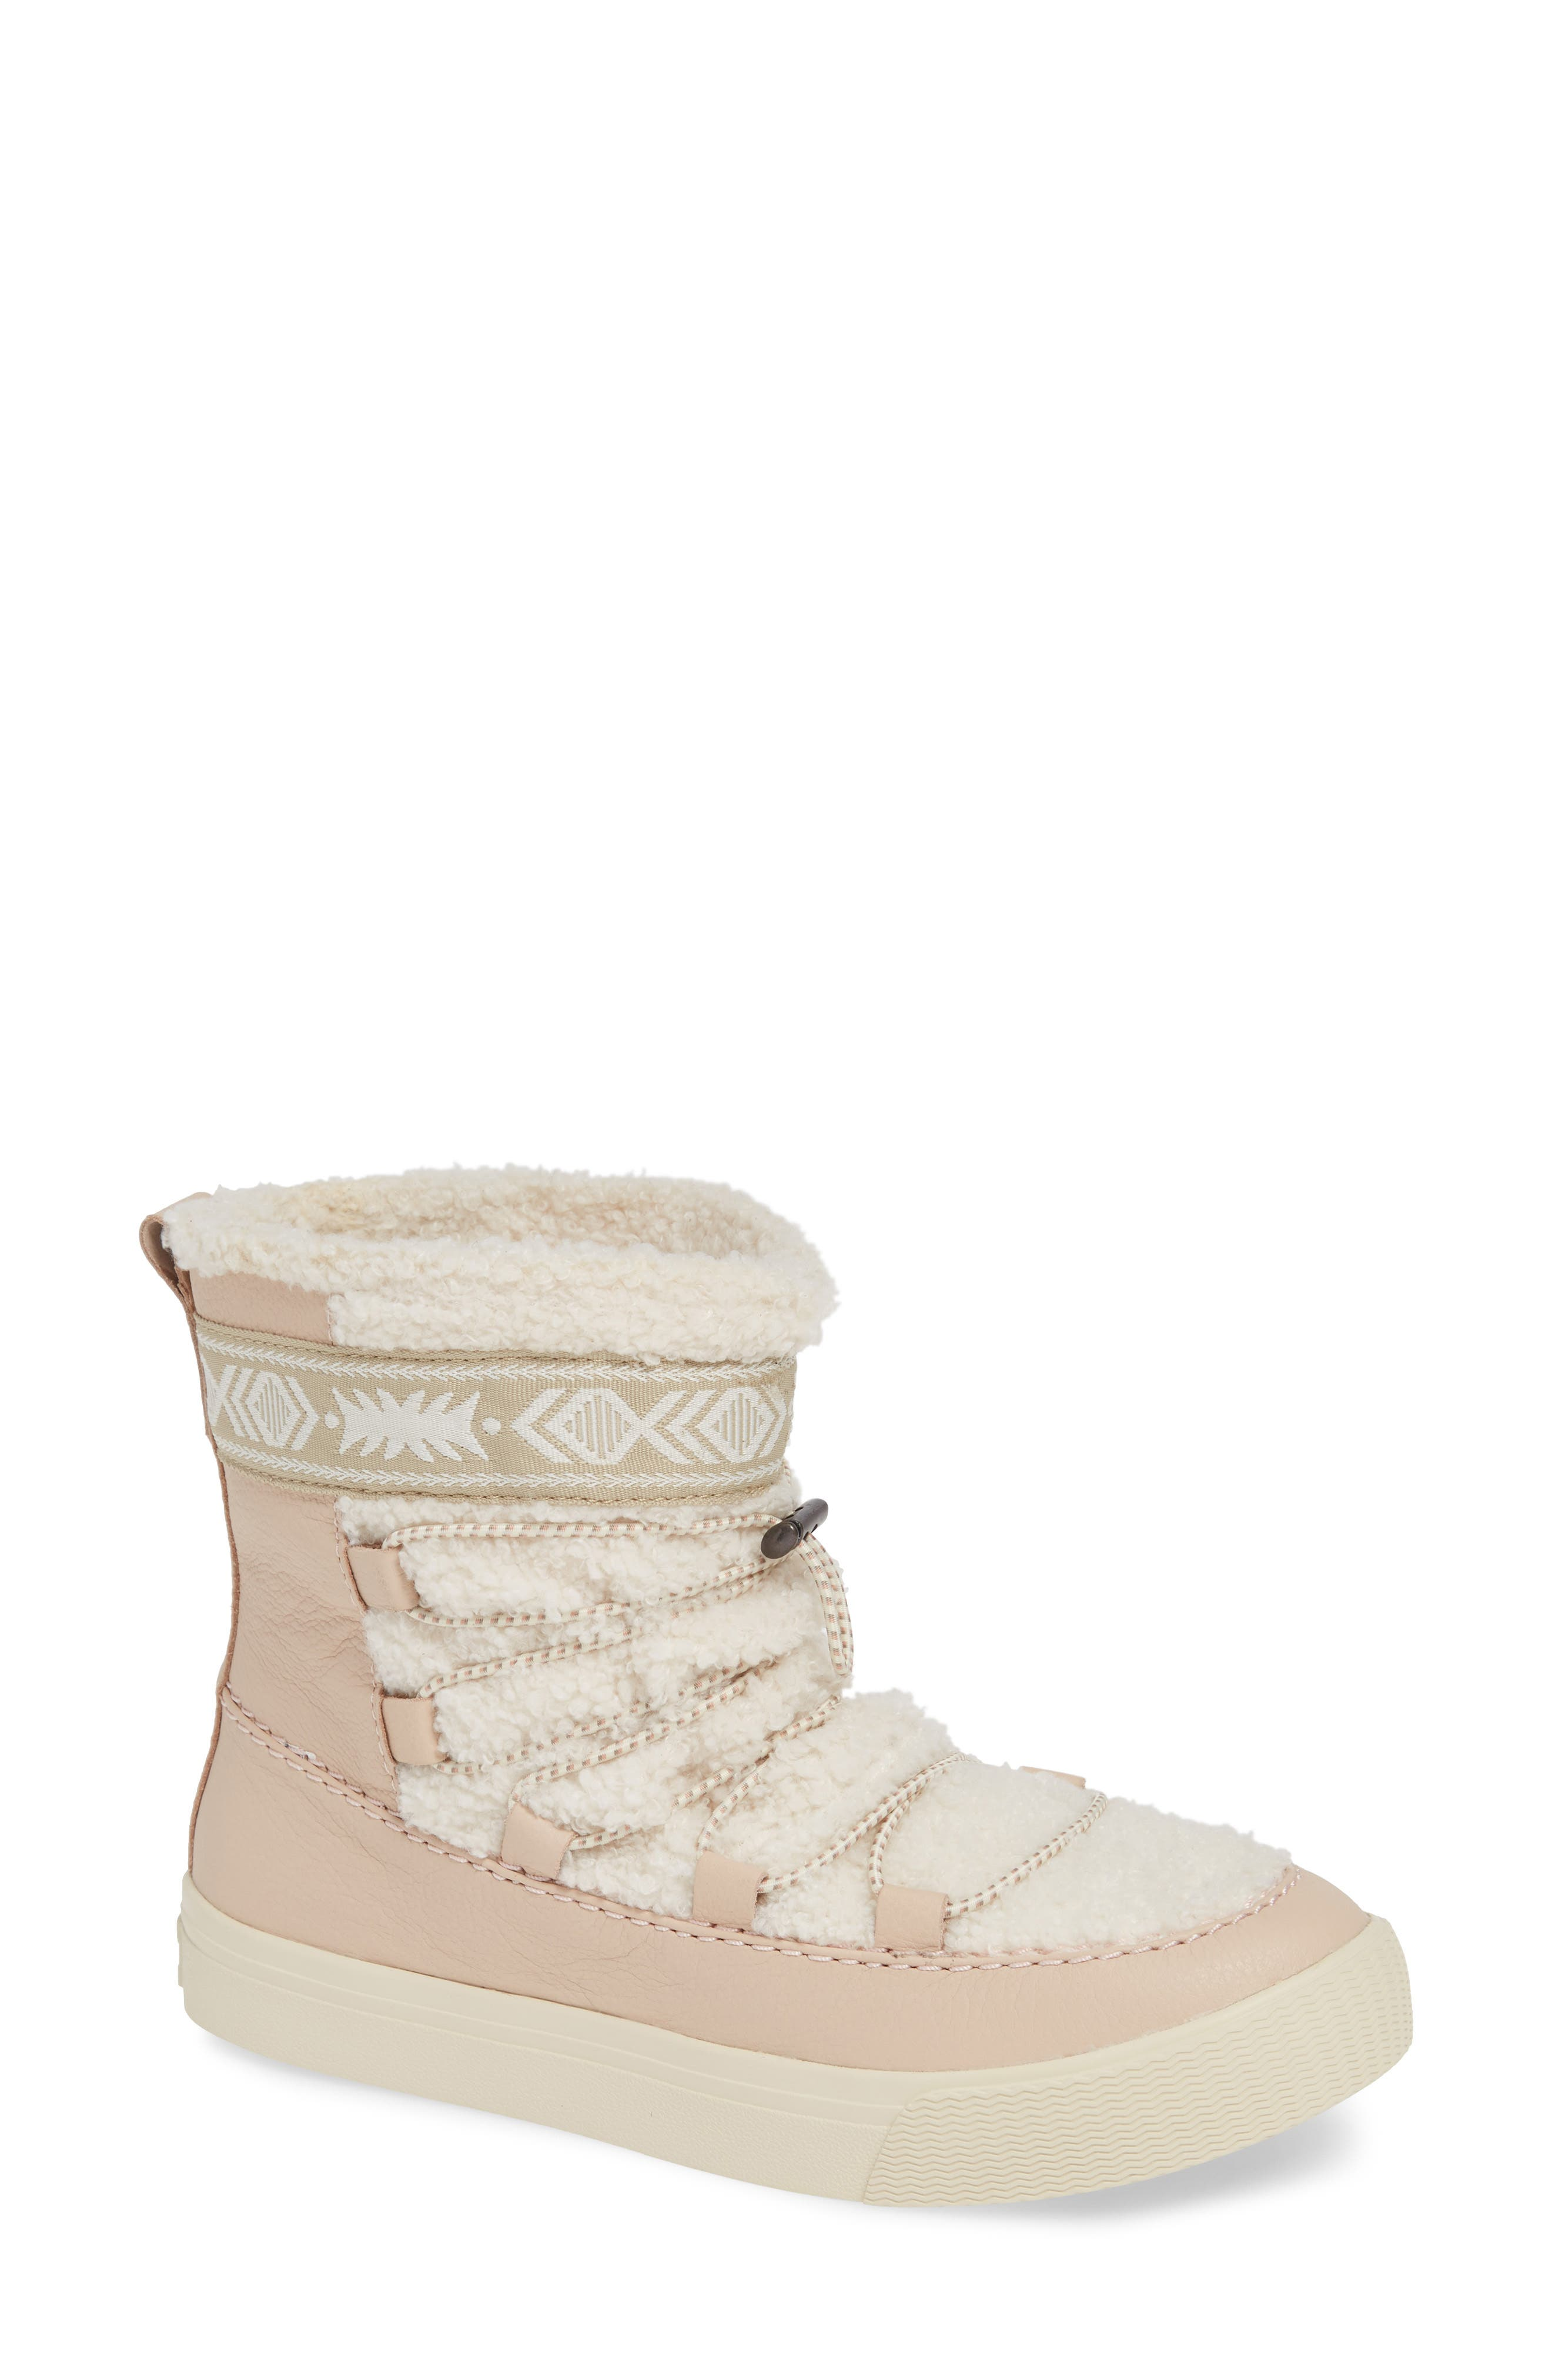 Toms Alpine Boot, Pink